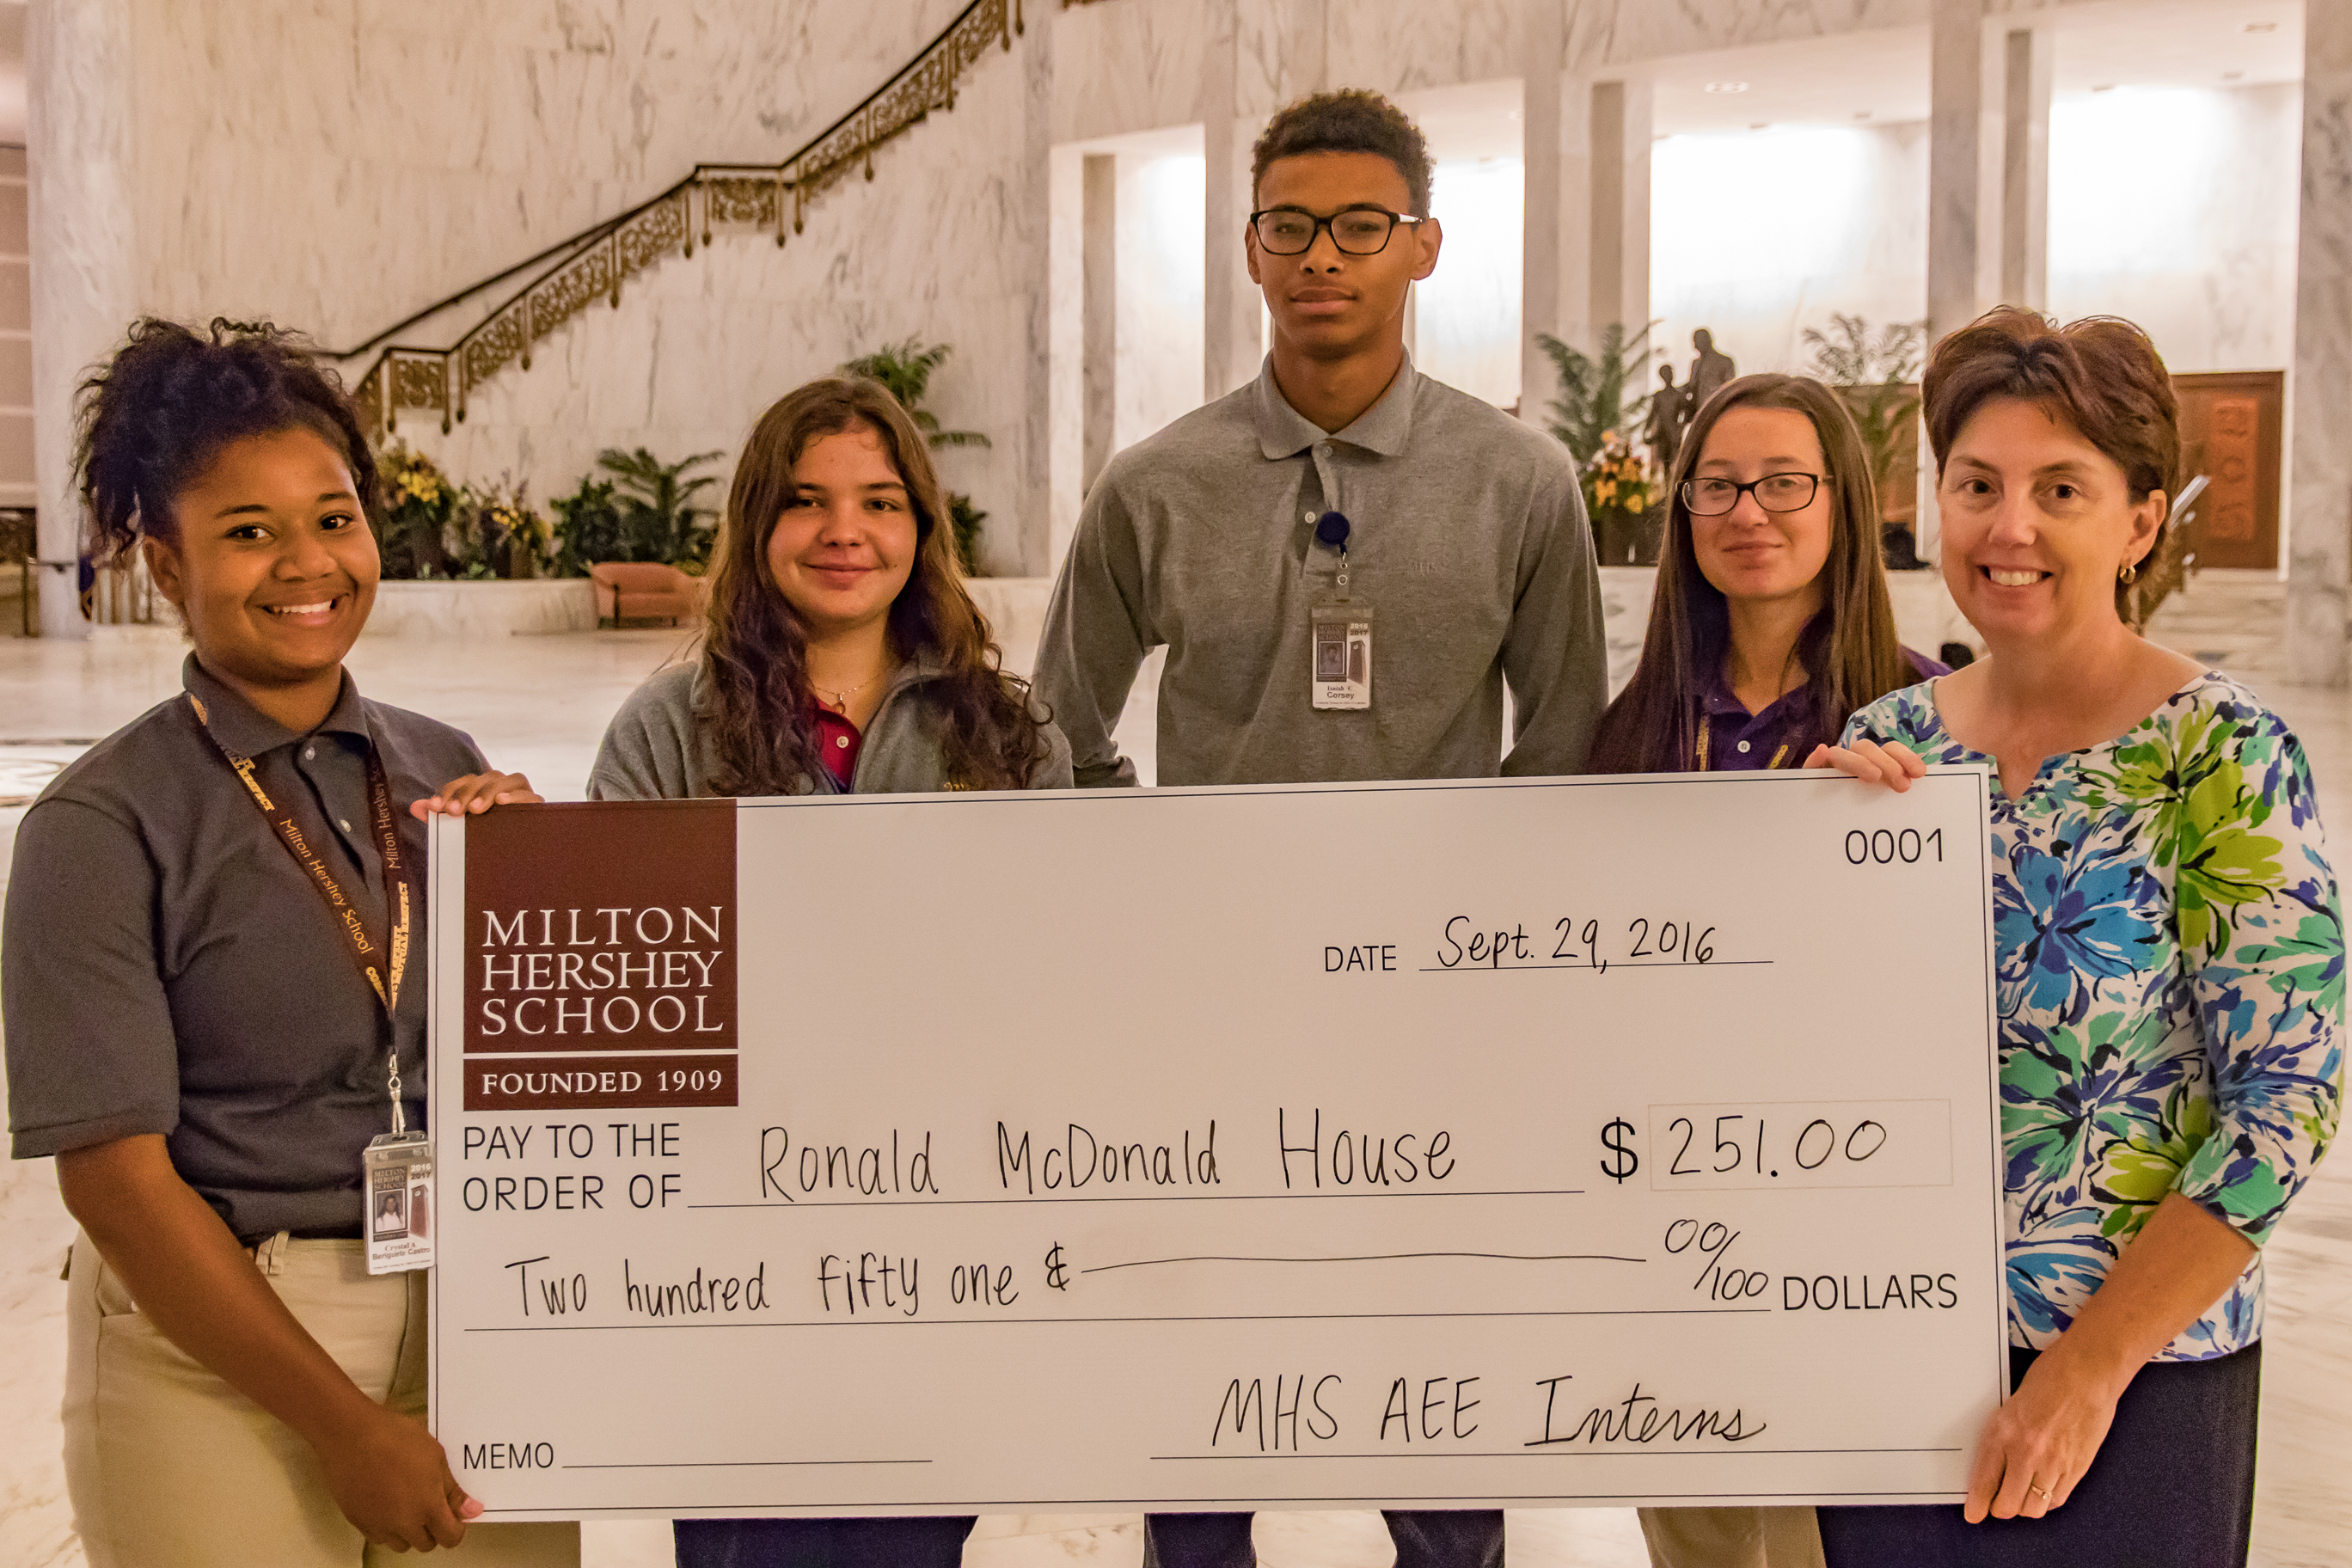 MHS AEE Interns Present Checks to Local Organizations from